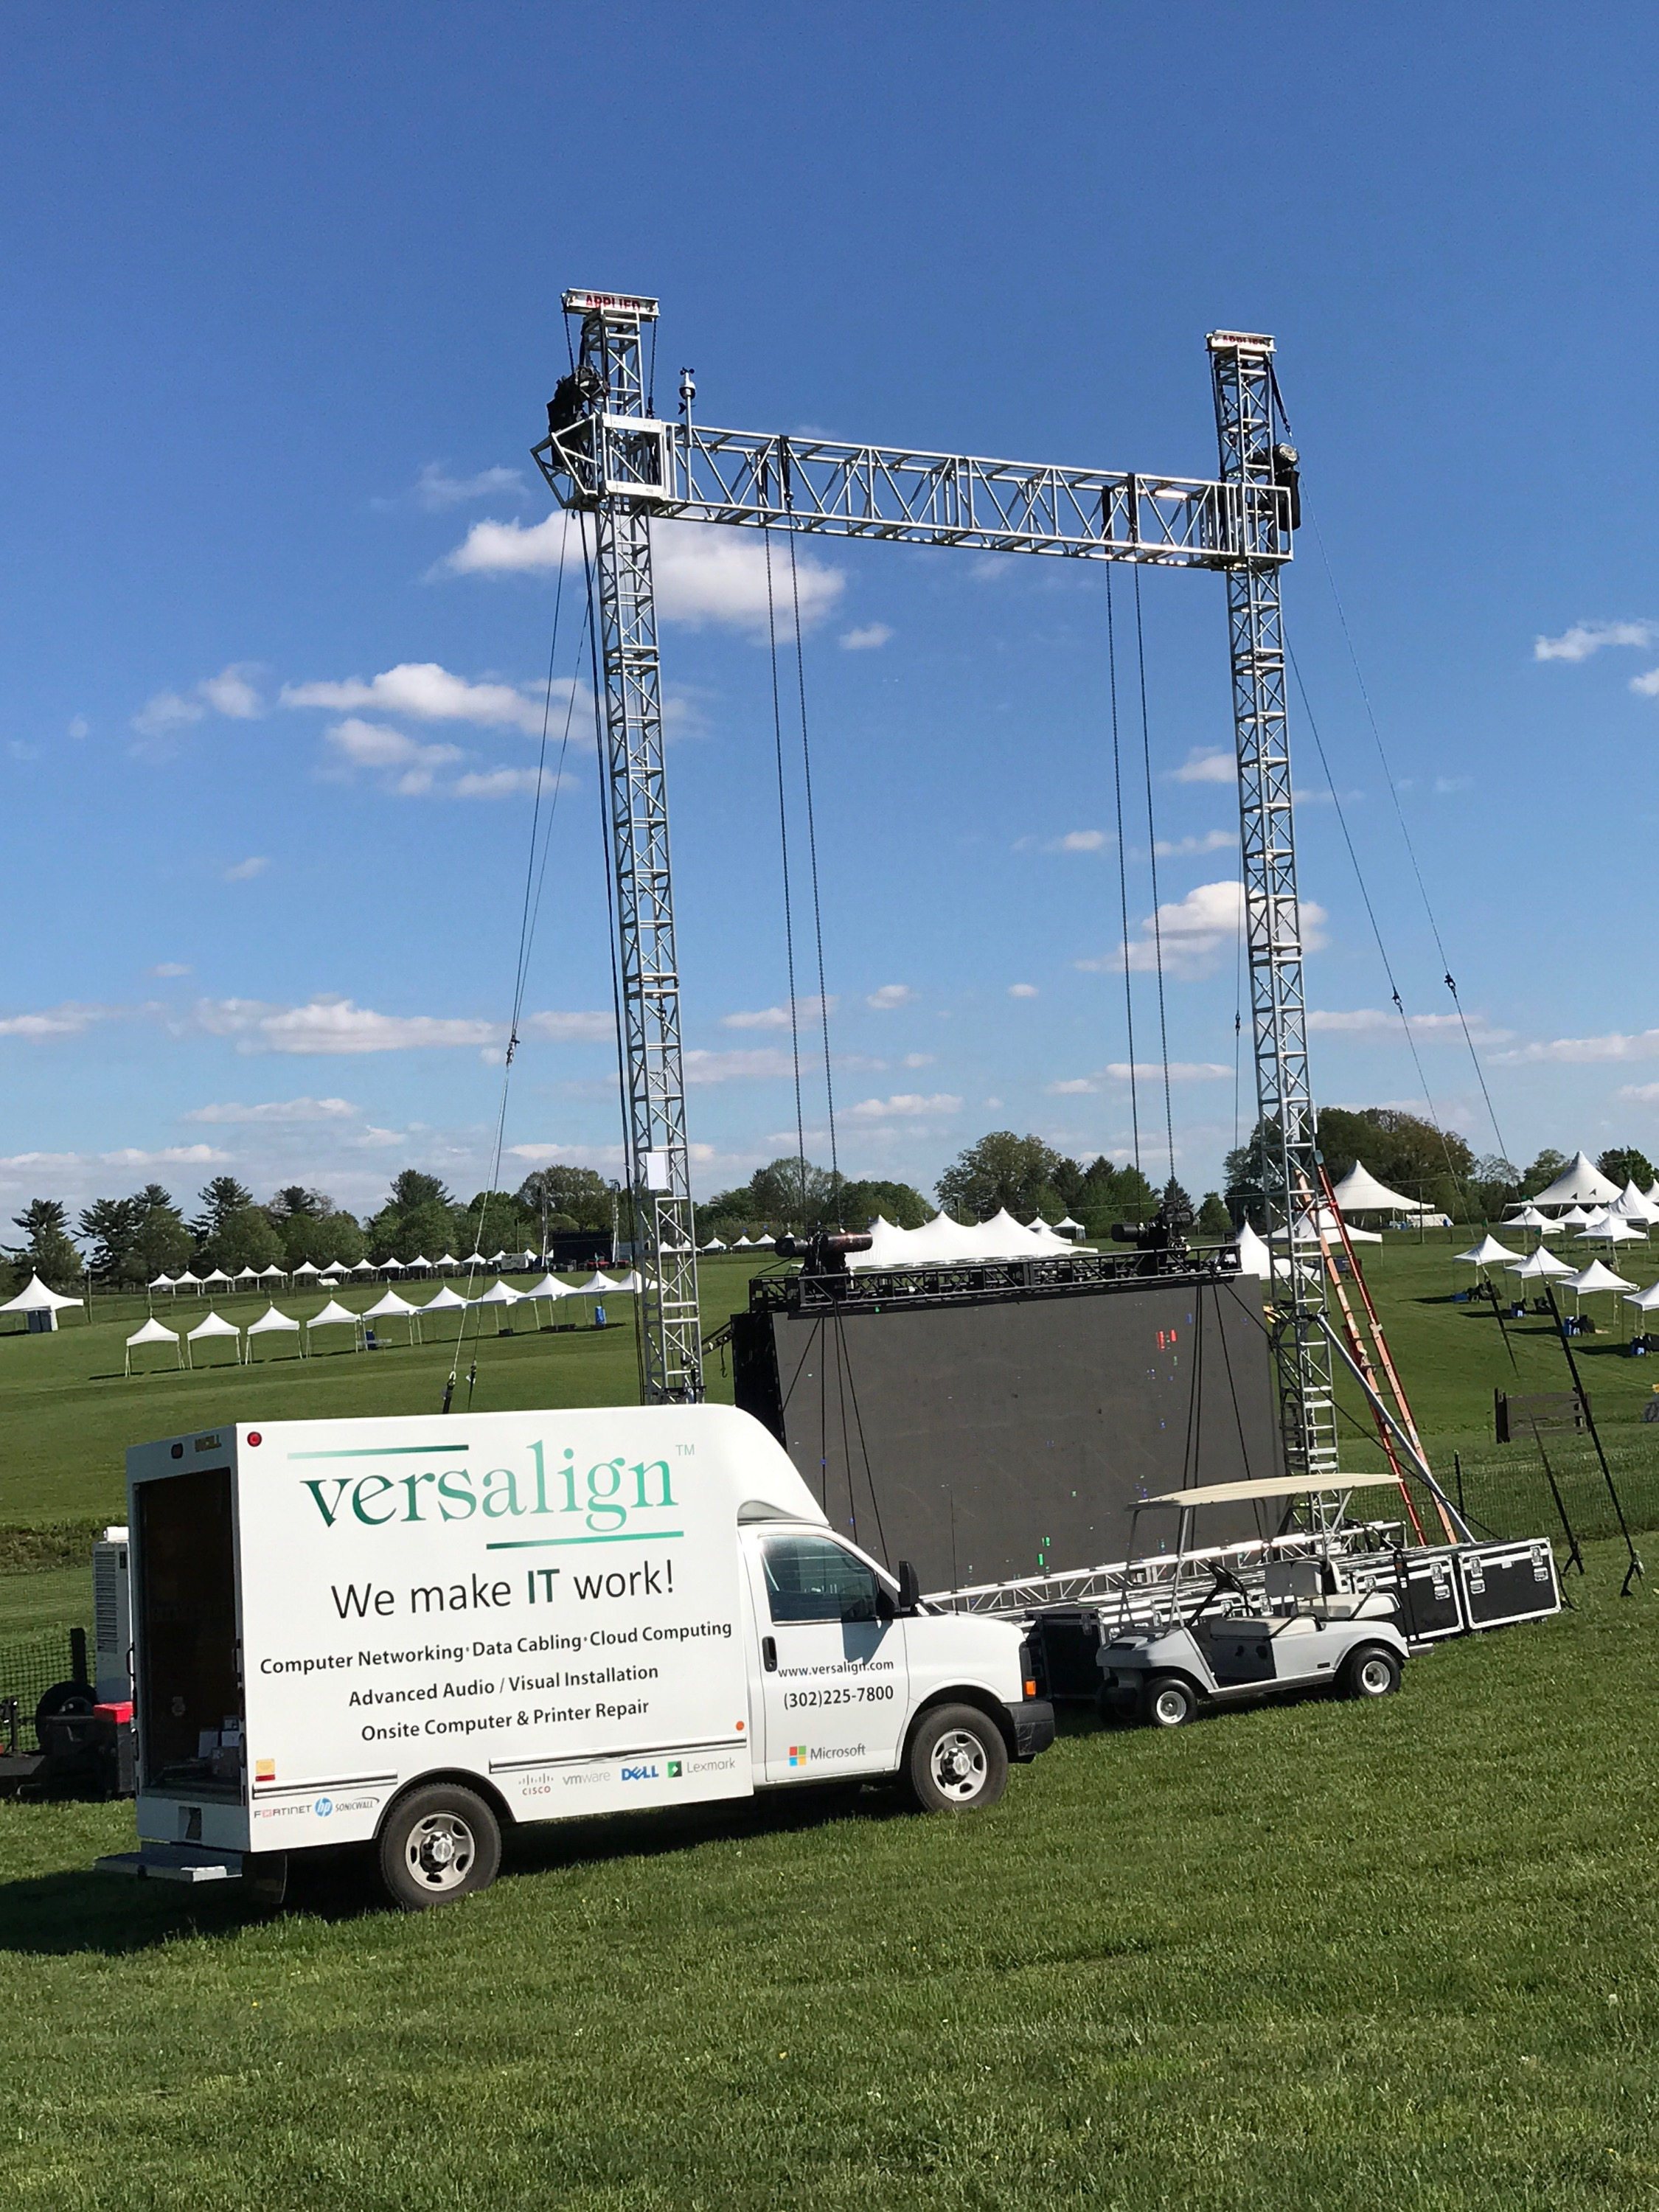 Versalign team working on providing wireless access to Point to Point attendees.